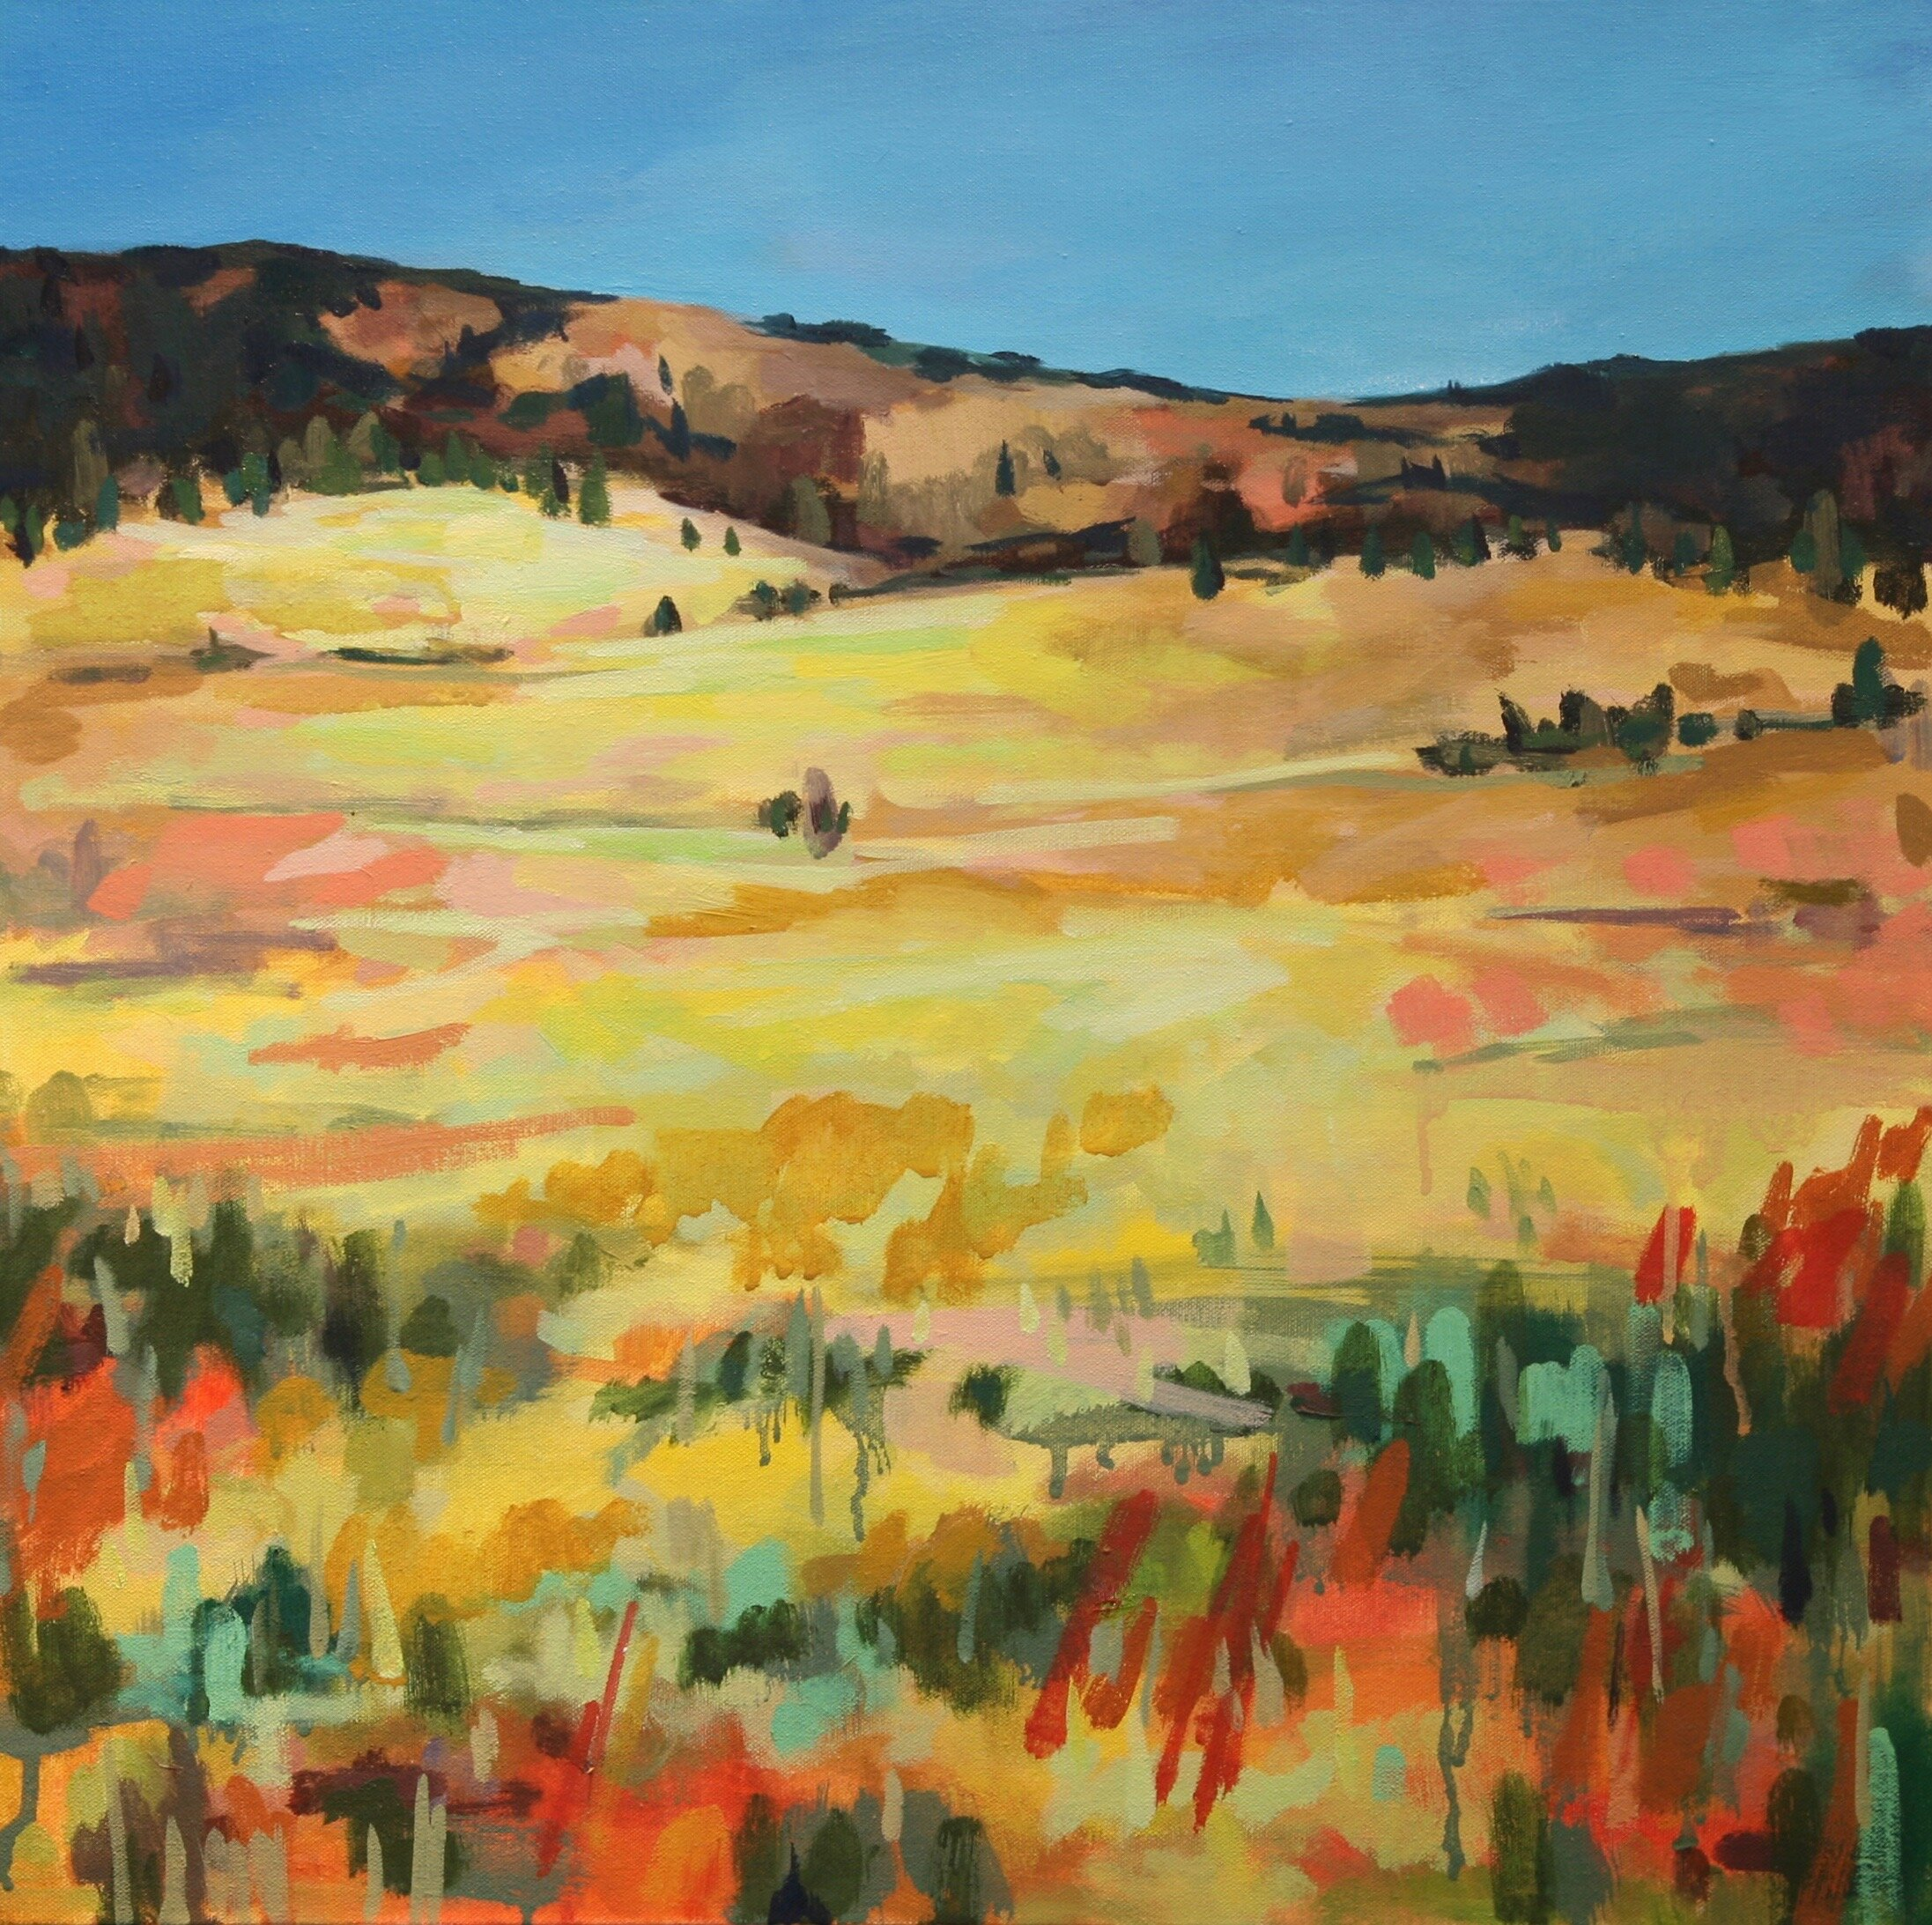 """'A Good Place to Start'  2013-2017  24"""" x 24""""  water soluble oil on canvas  sold"""